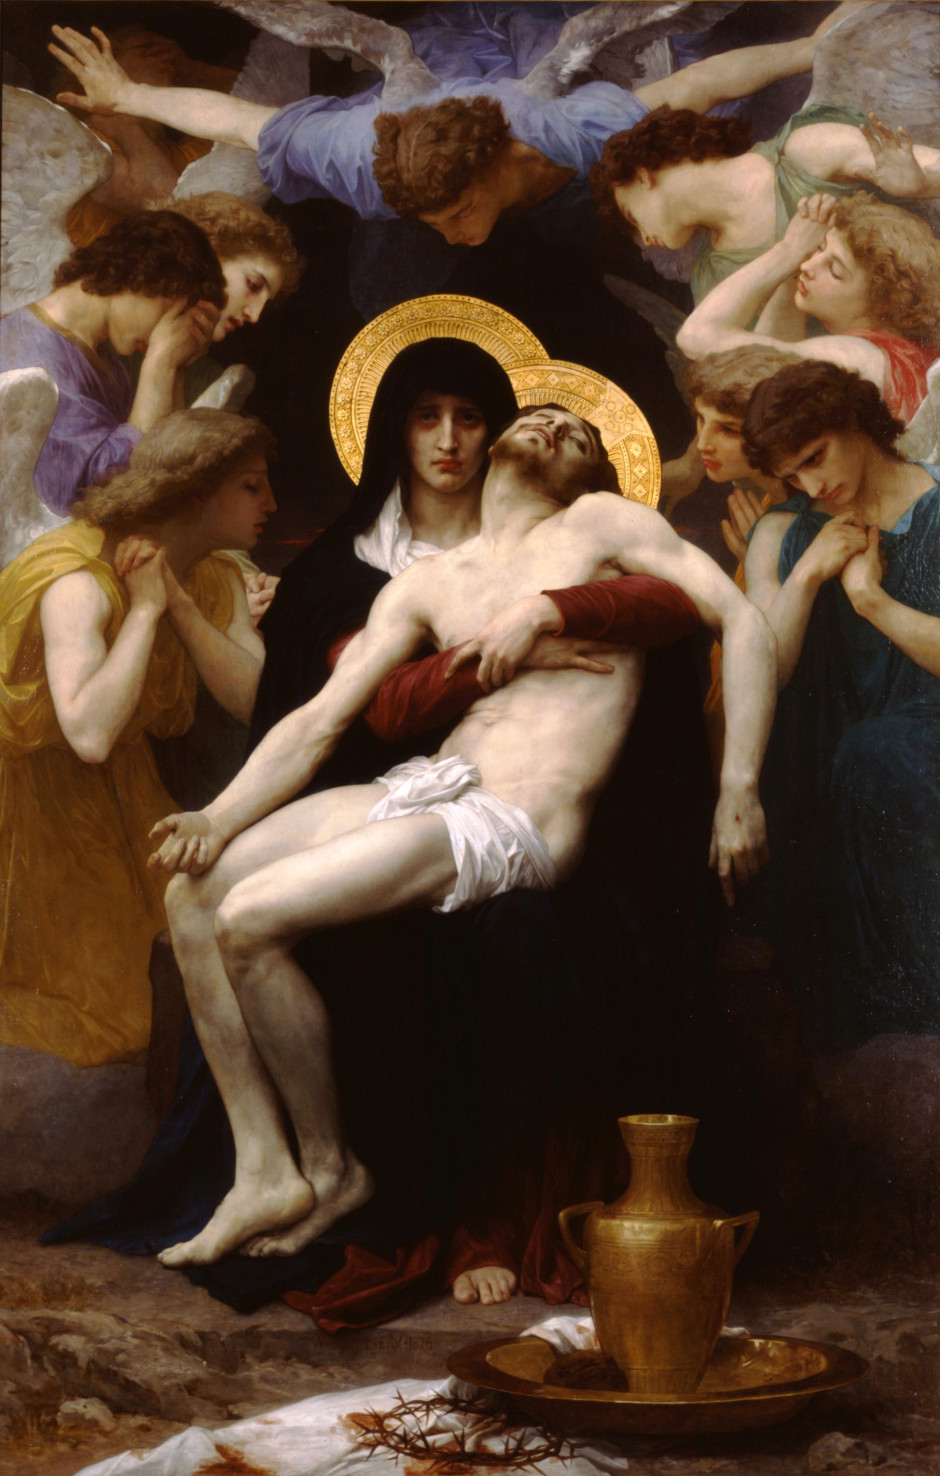 September 15: Our Lady ofSorrows